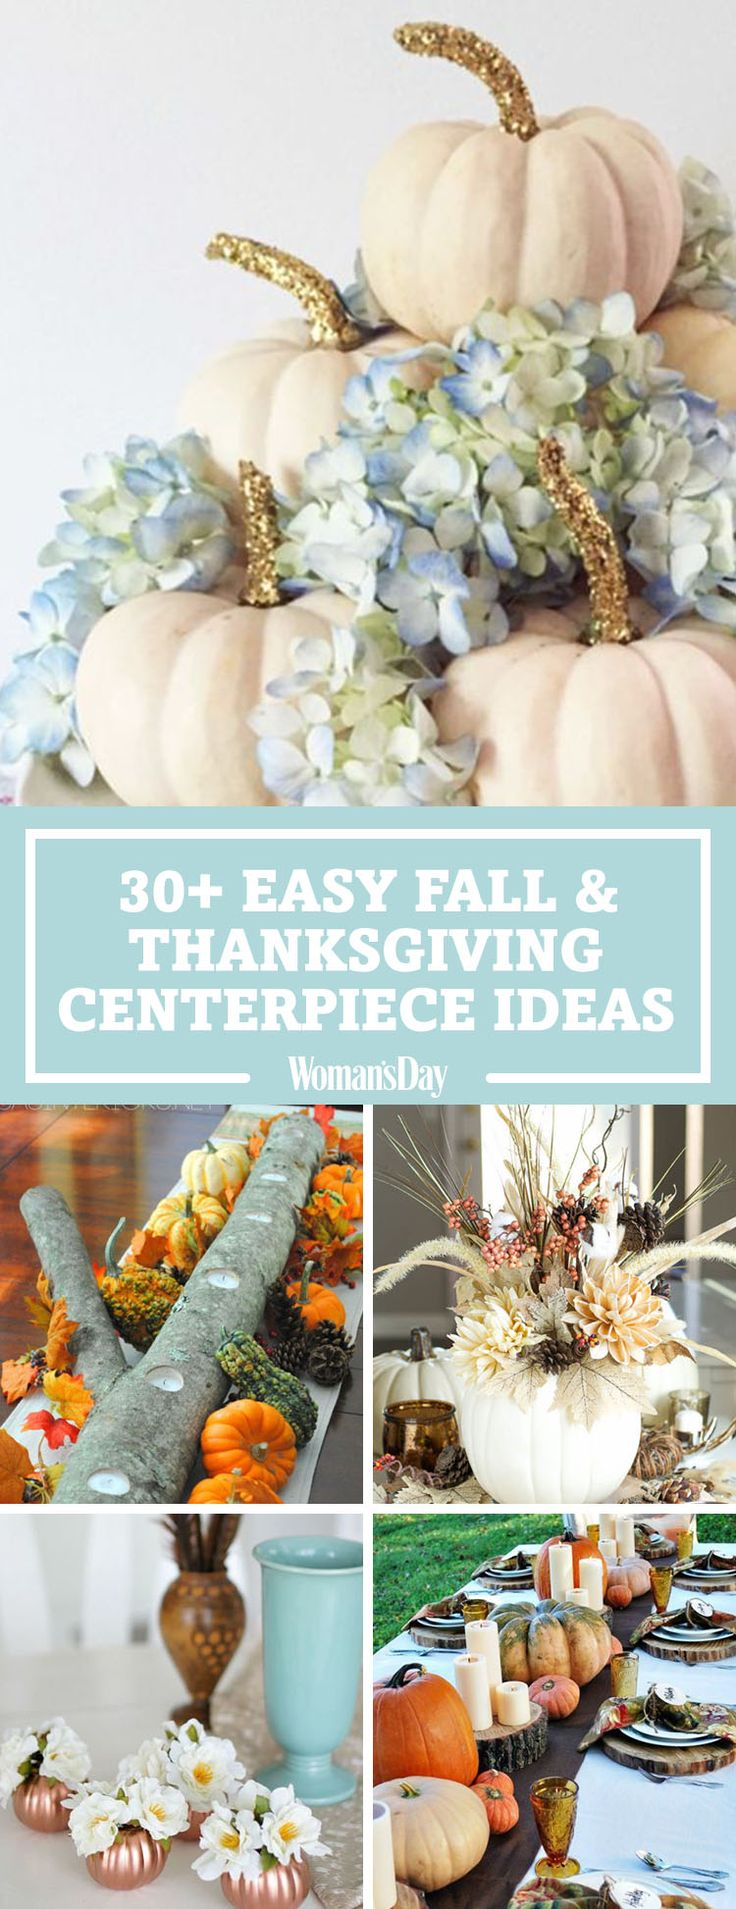 946 Best Thanksgiving And Fall Images On Pinterest